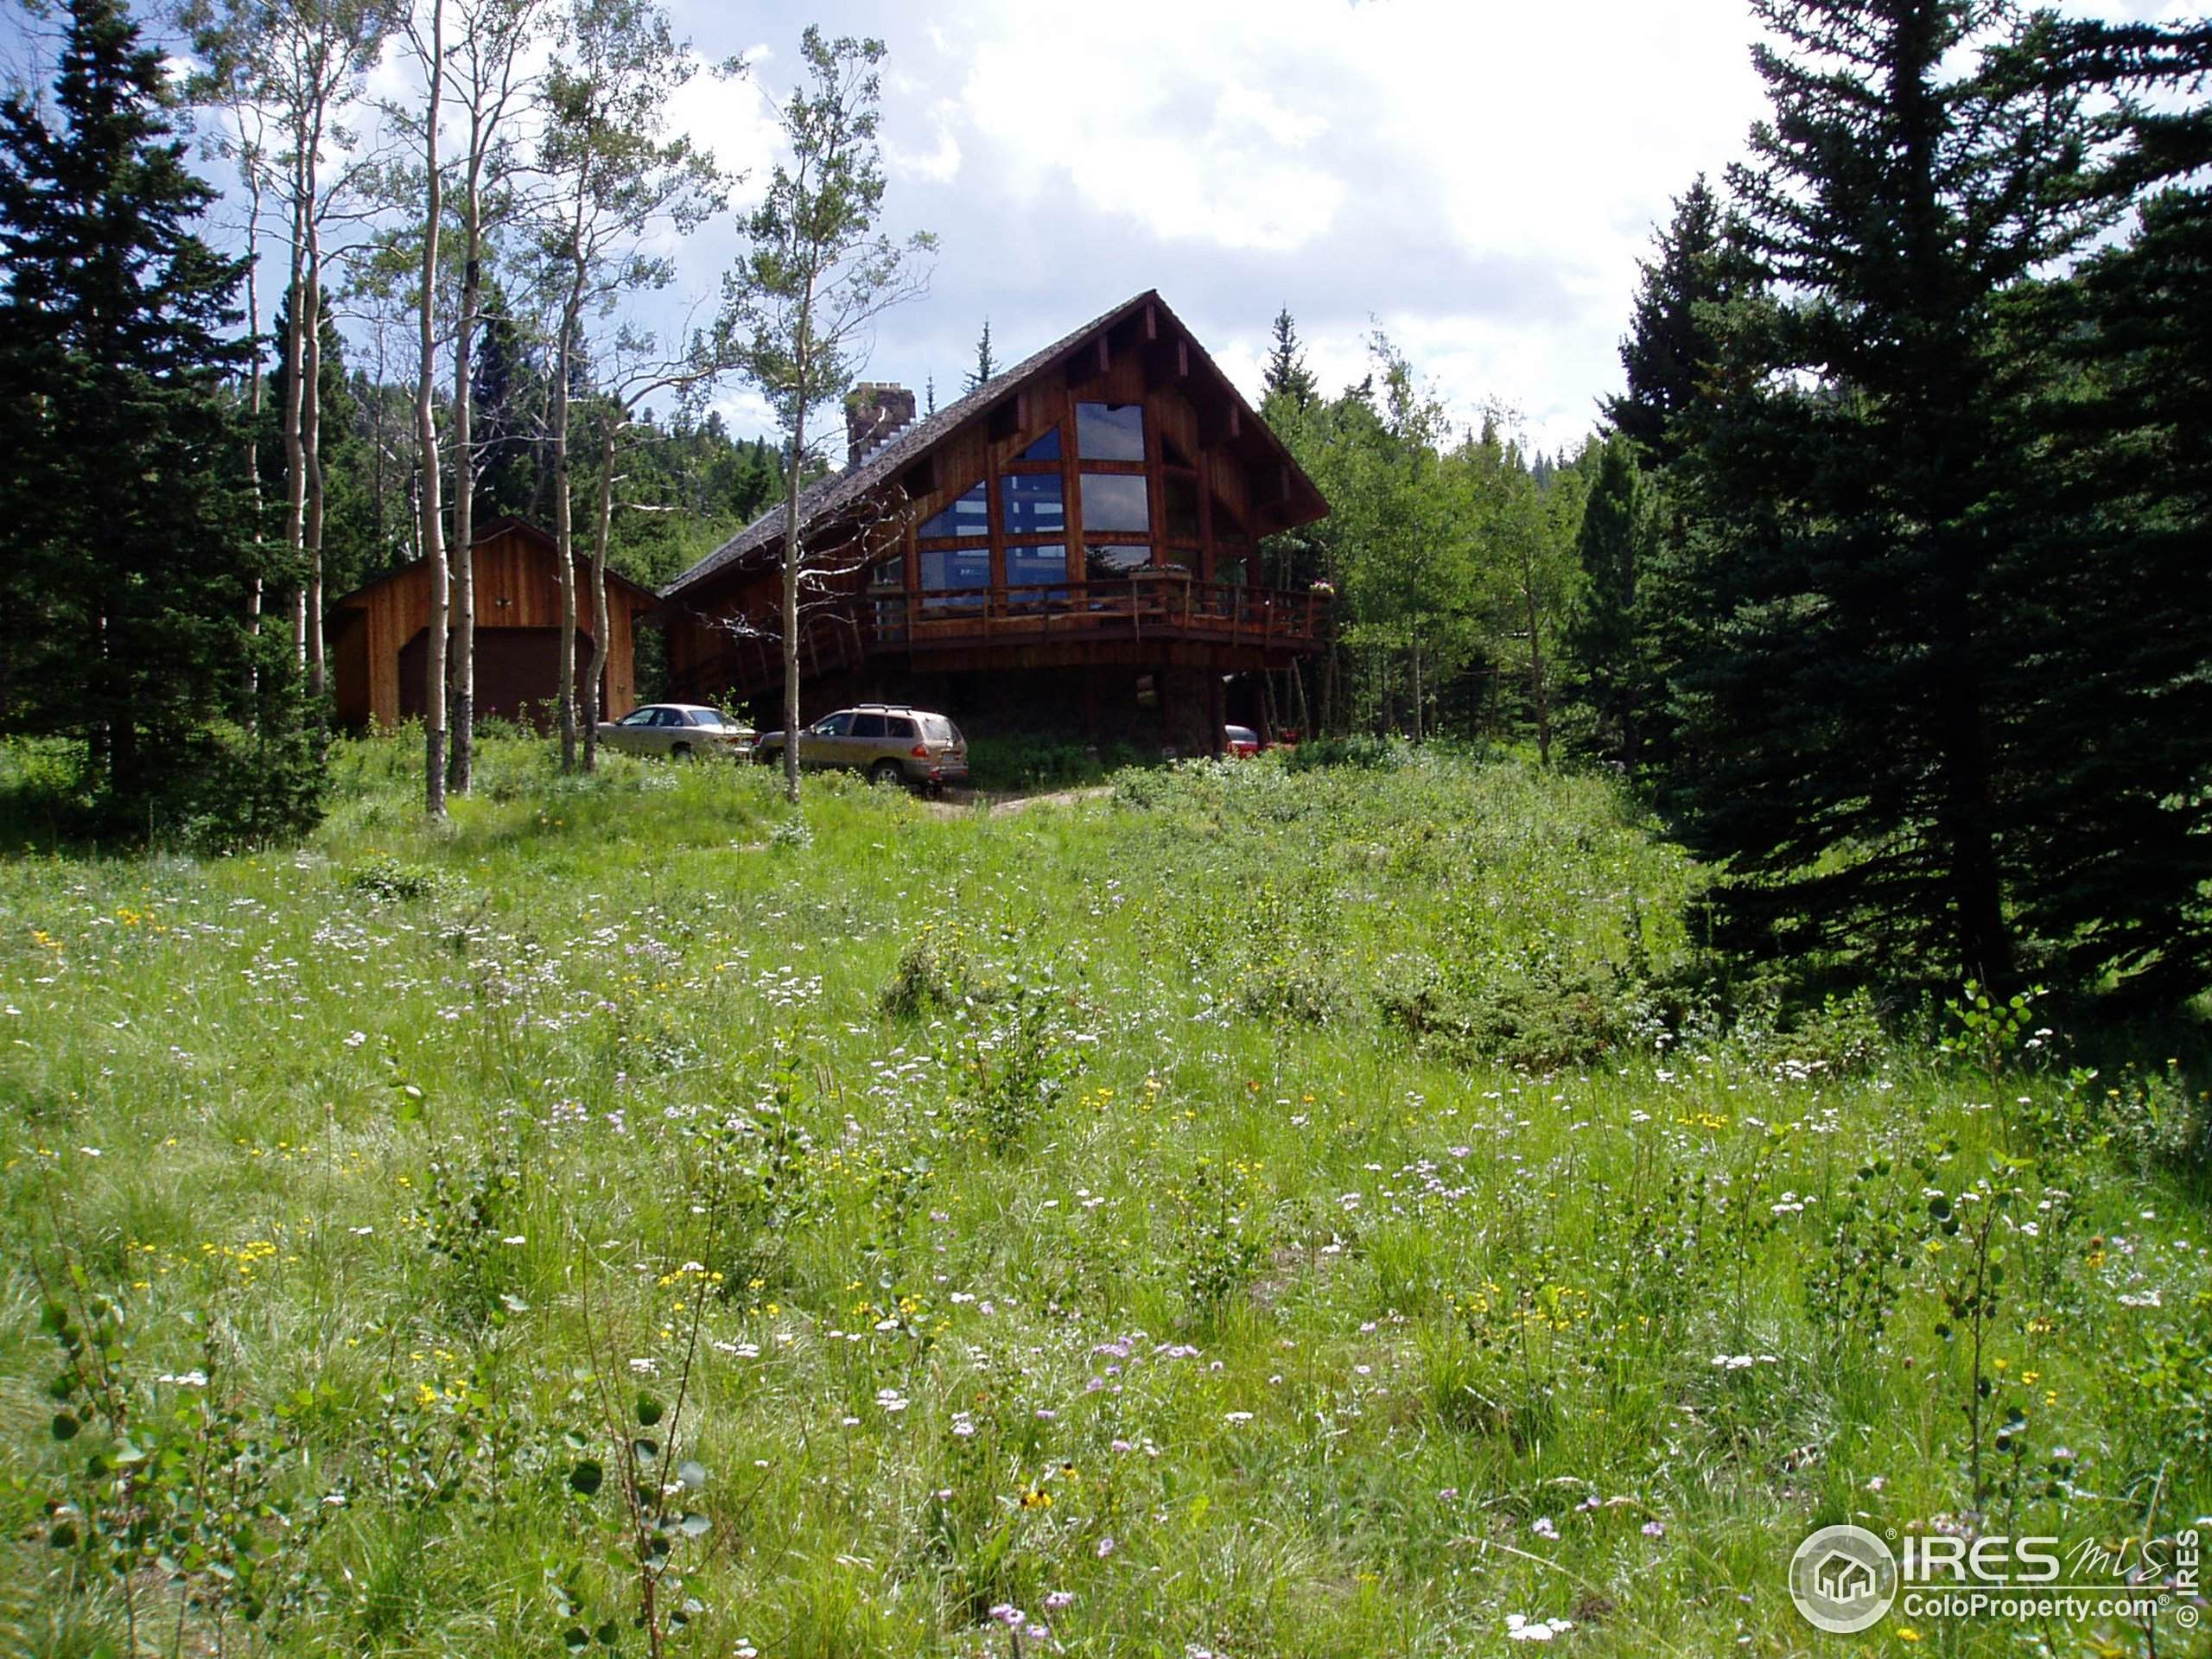 1120 W Magnolia St, Fort Collins, CO 80521 (MLS #899878) :: Colorado Home Finder Realty